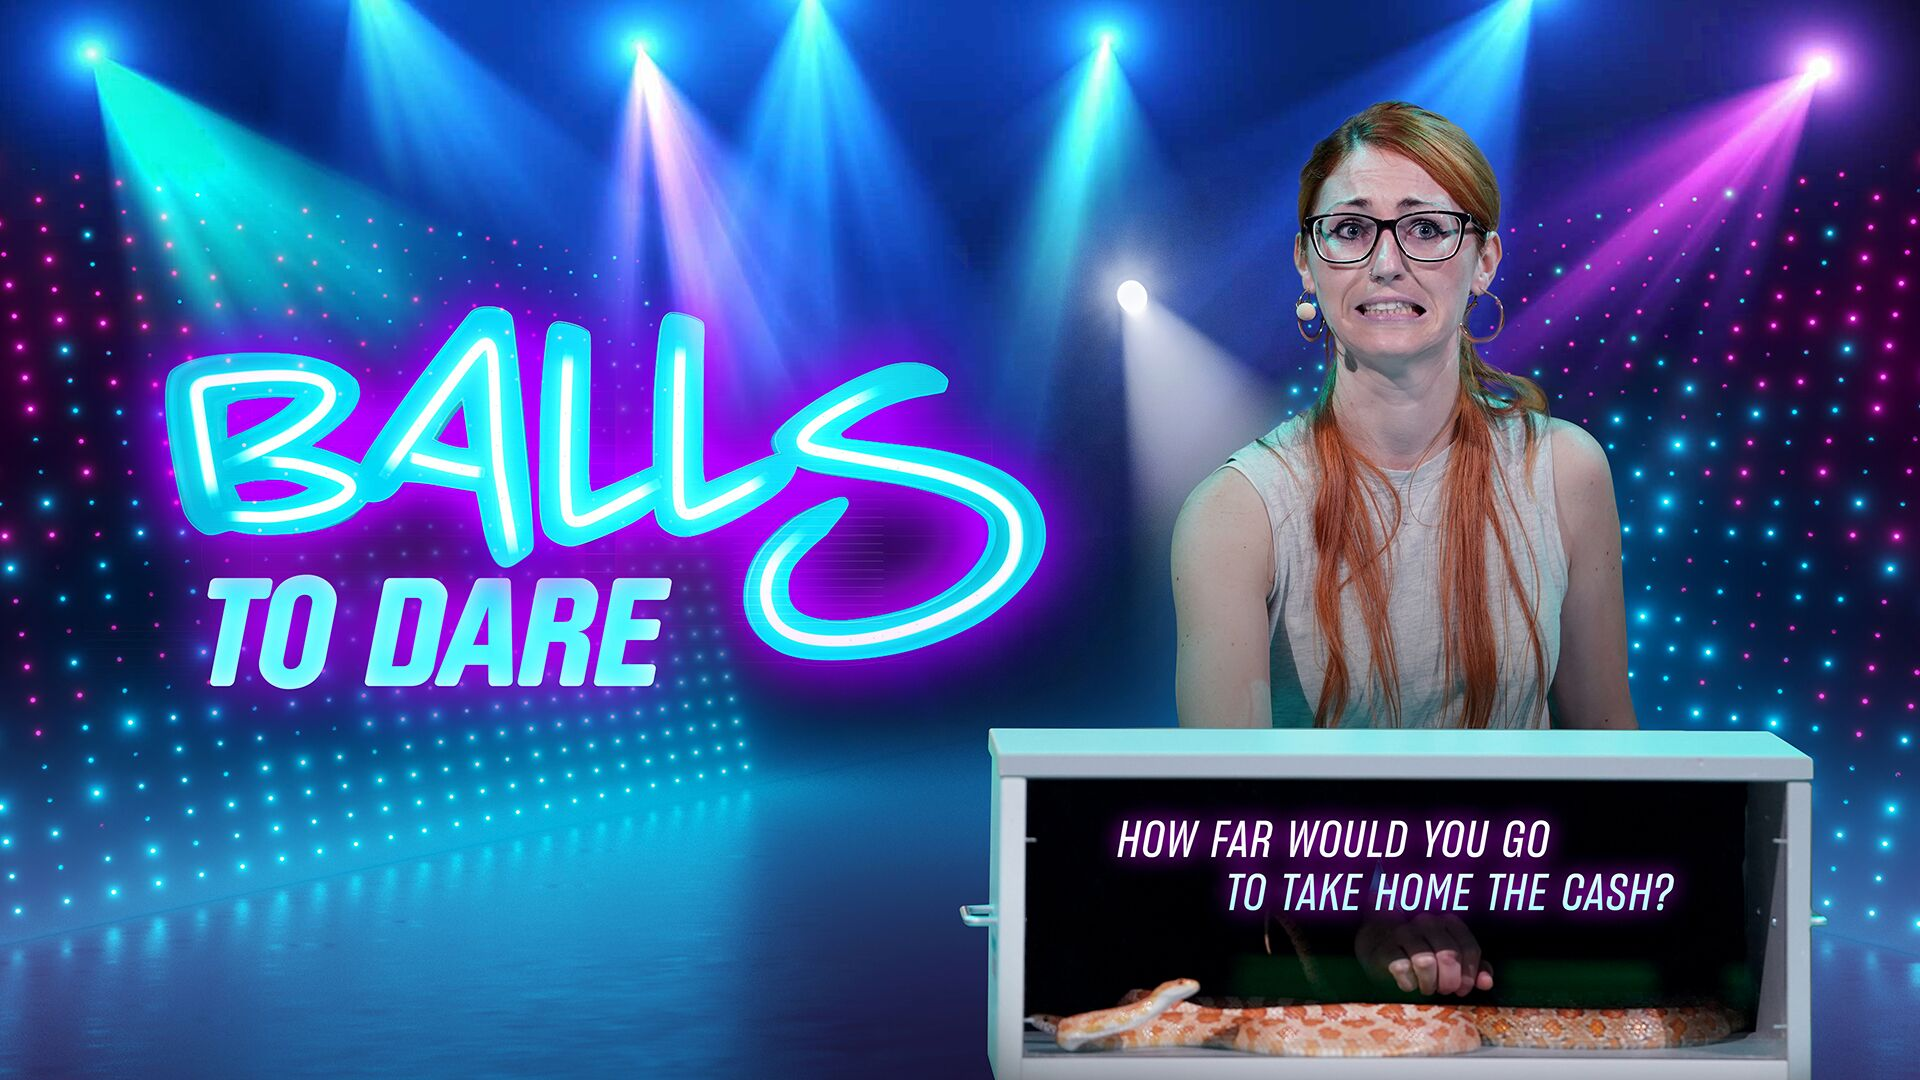 Balls to Dare Red Arrow Studios International Redseven Entertainment